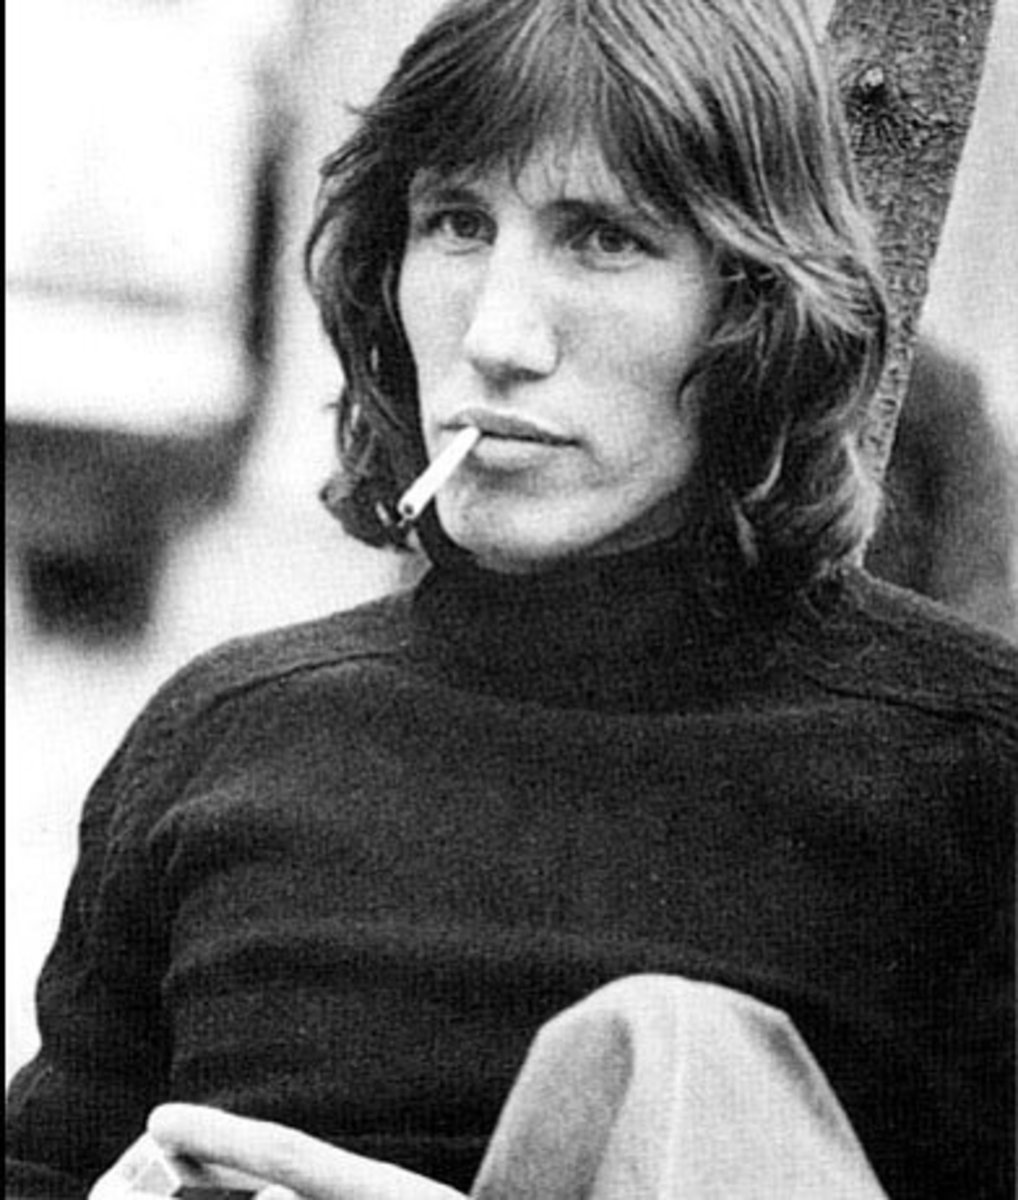 Roger Waters: A Brief Glimpse into a Tortured Soul